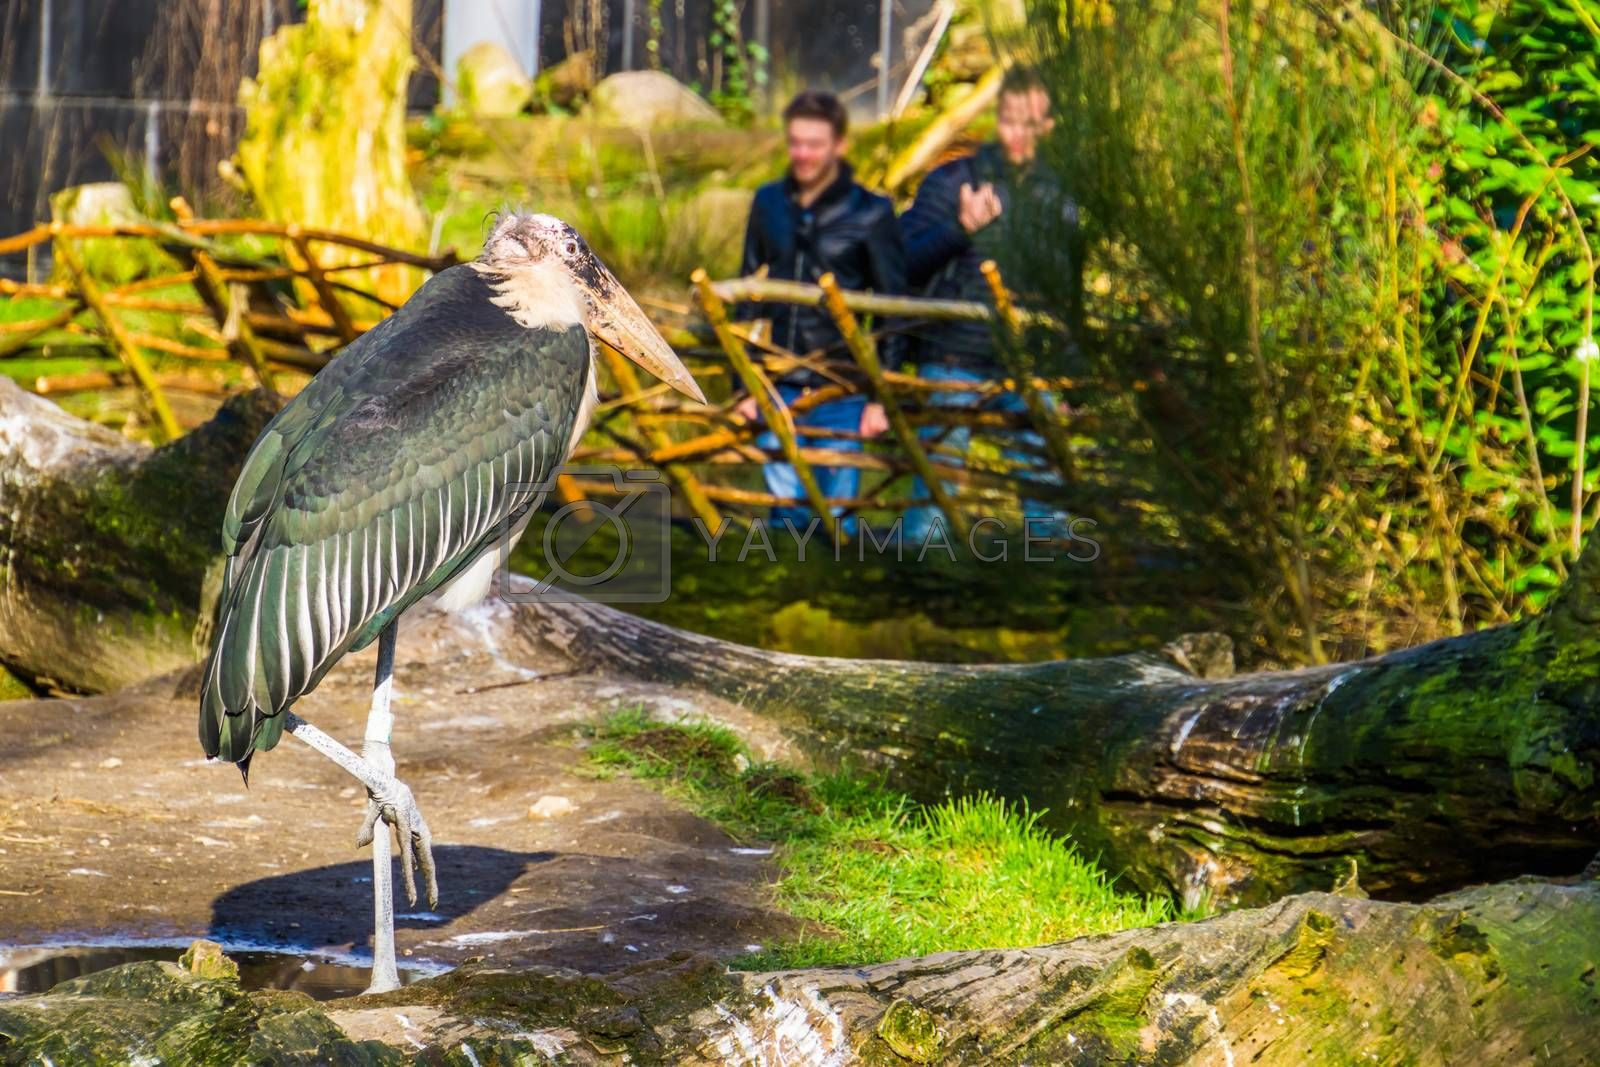 two men visiting the zoo and looking at a marabou stork, popular zoo animal by charlotte Bleijenberg